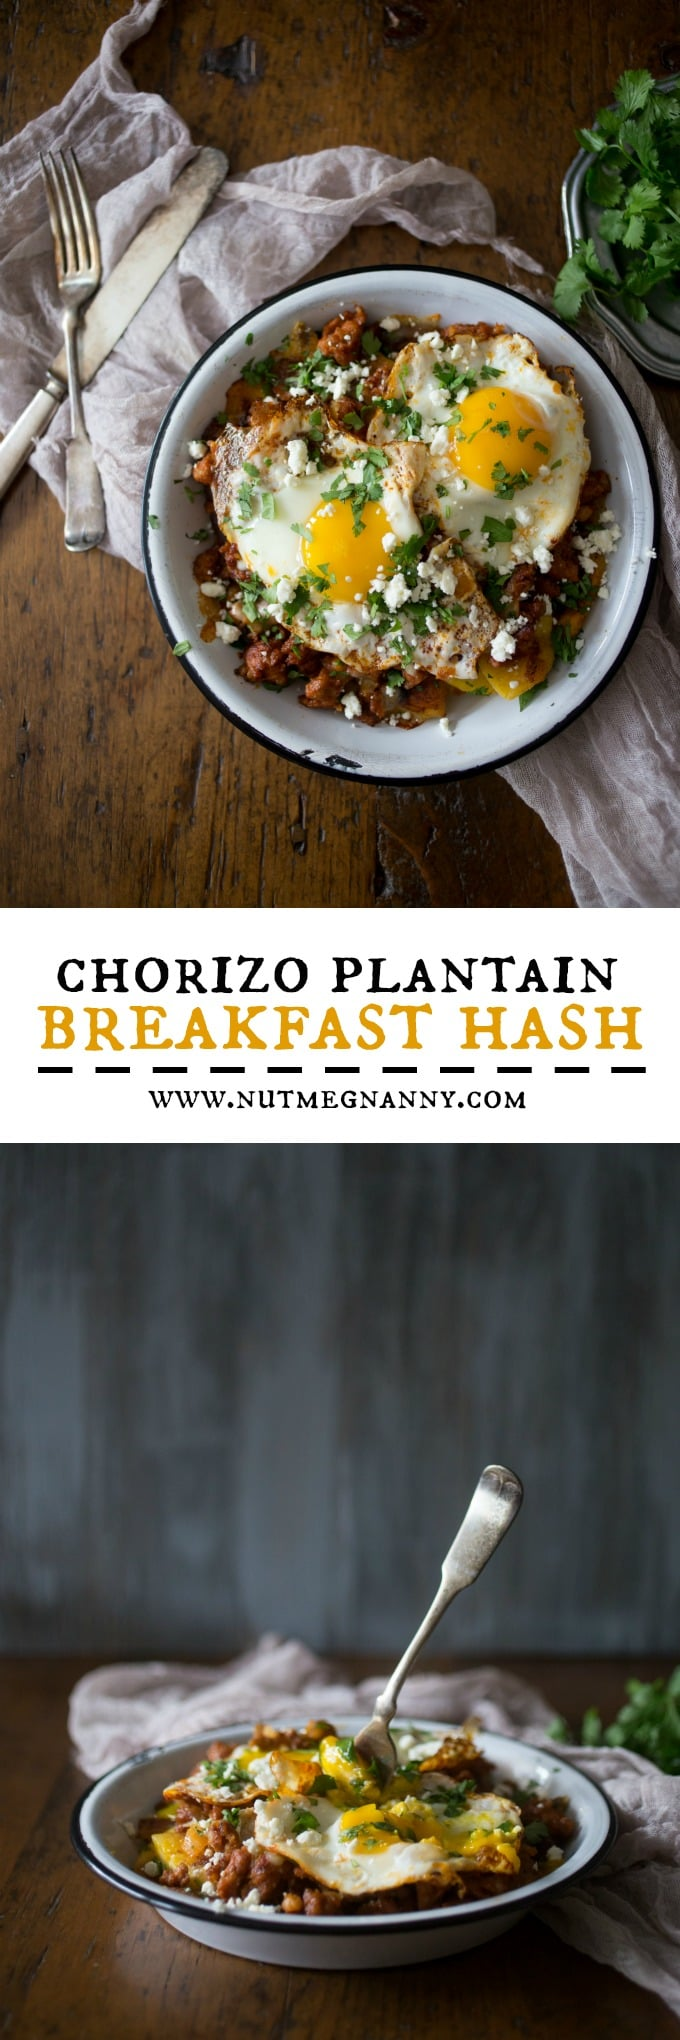 This chorizo plantain breakfast hash is the most delicious way to start your day. Slight sweet and spicy and ready in just 30 minutes!